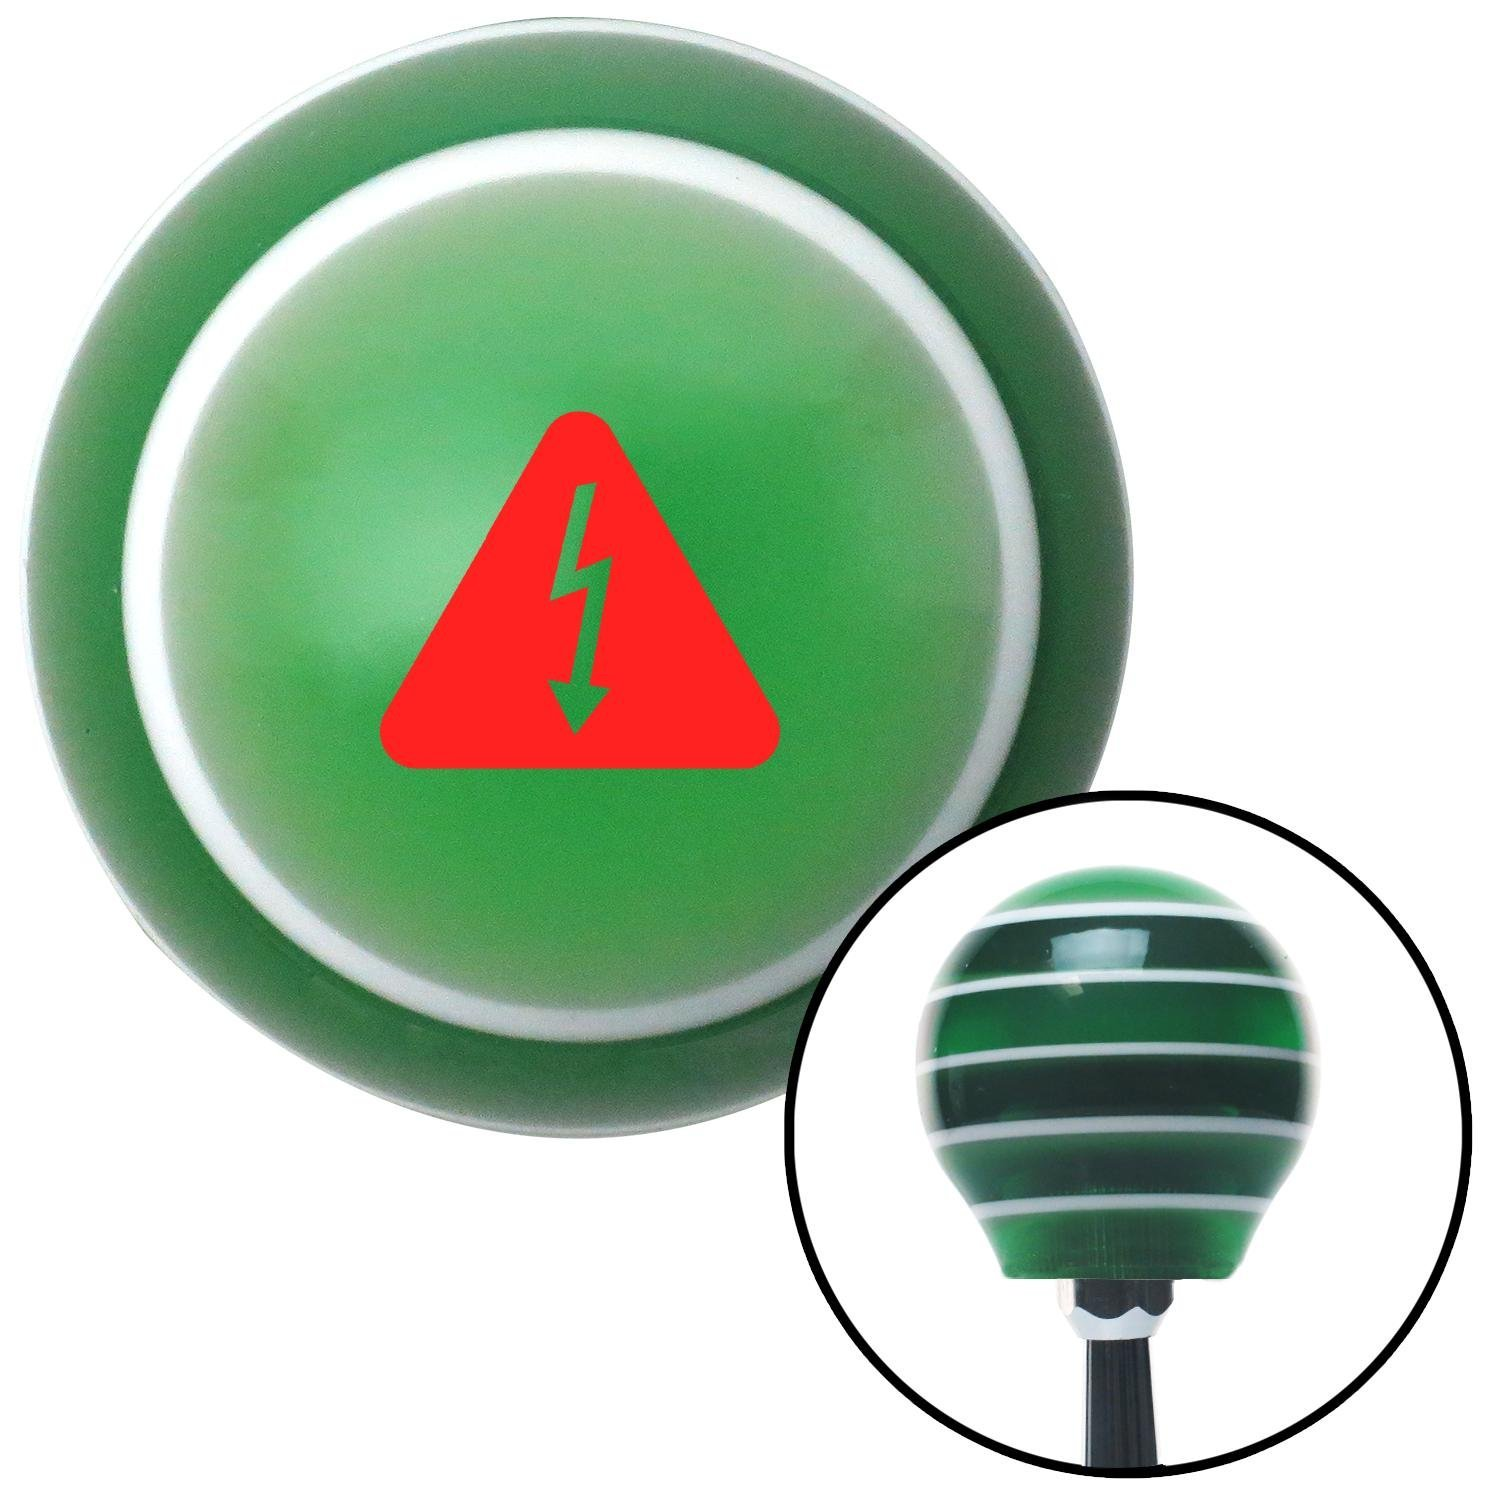 American Shifter 274910 Shift Knob Red High Voltage Green Stripe with M16 x 1.5 Insert